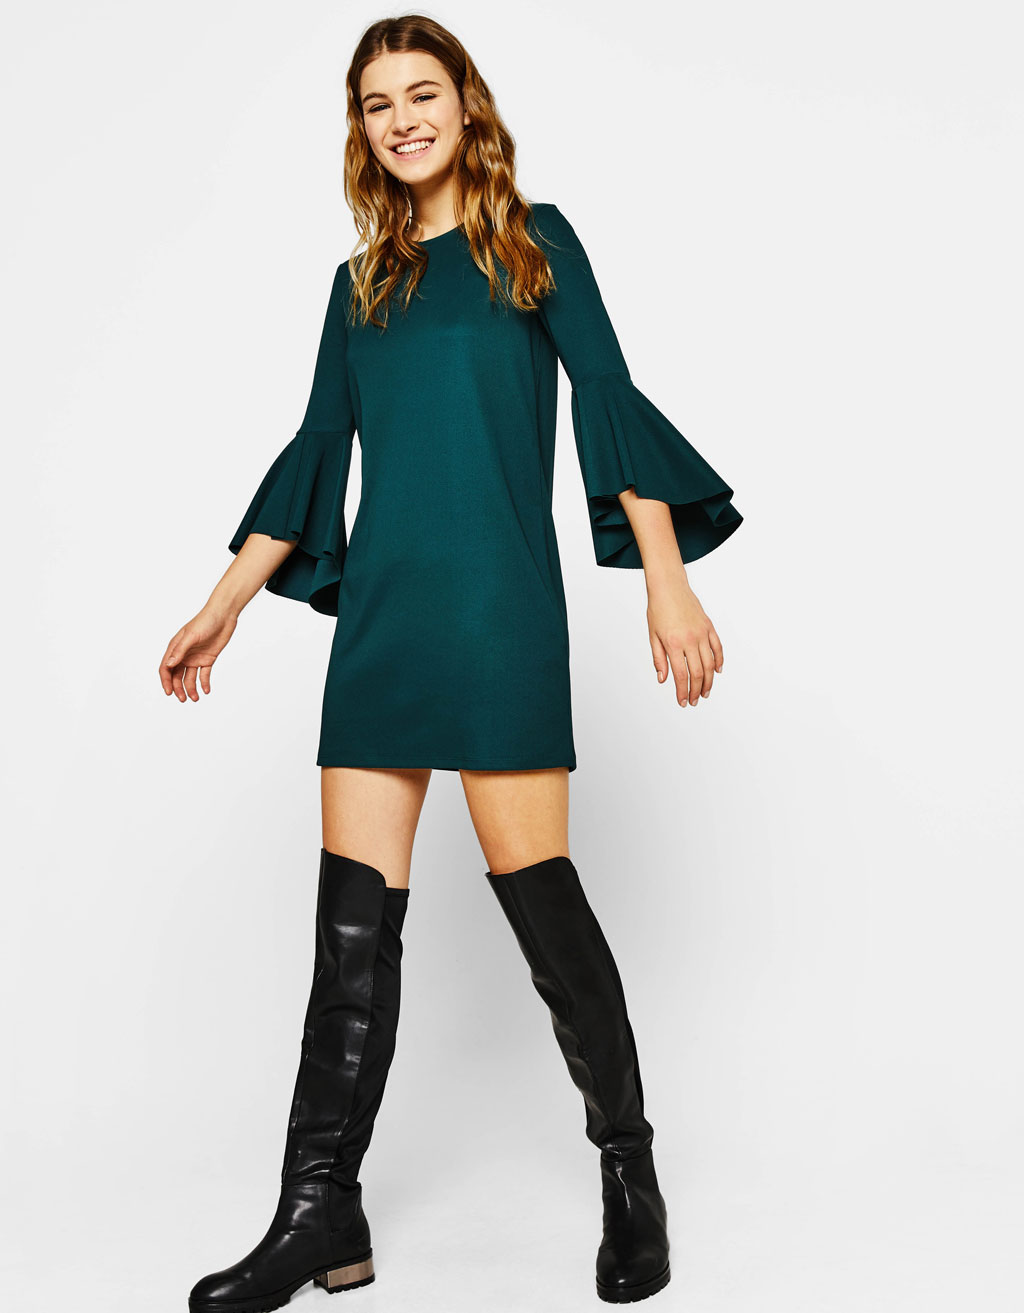 Short dress with ruffled sleeves